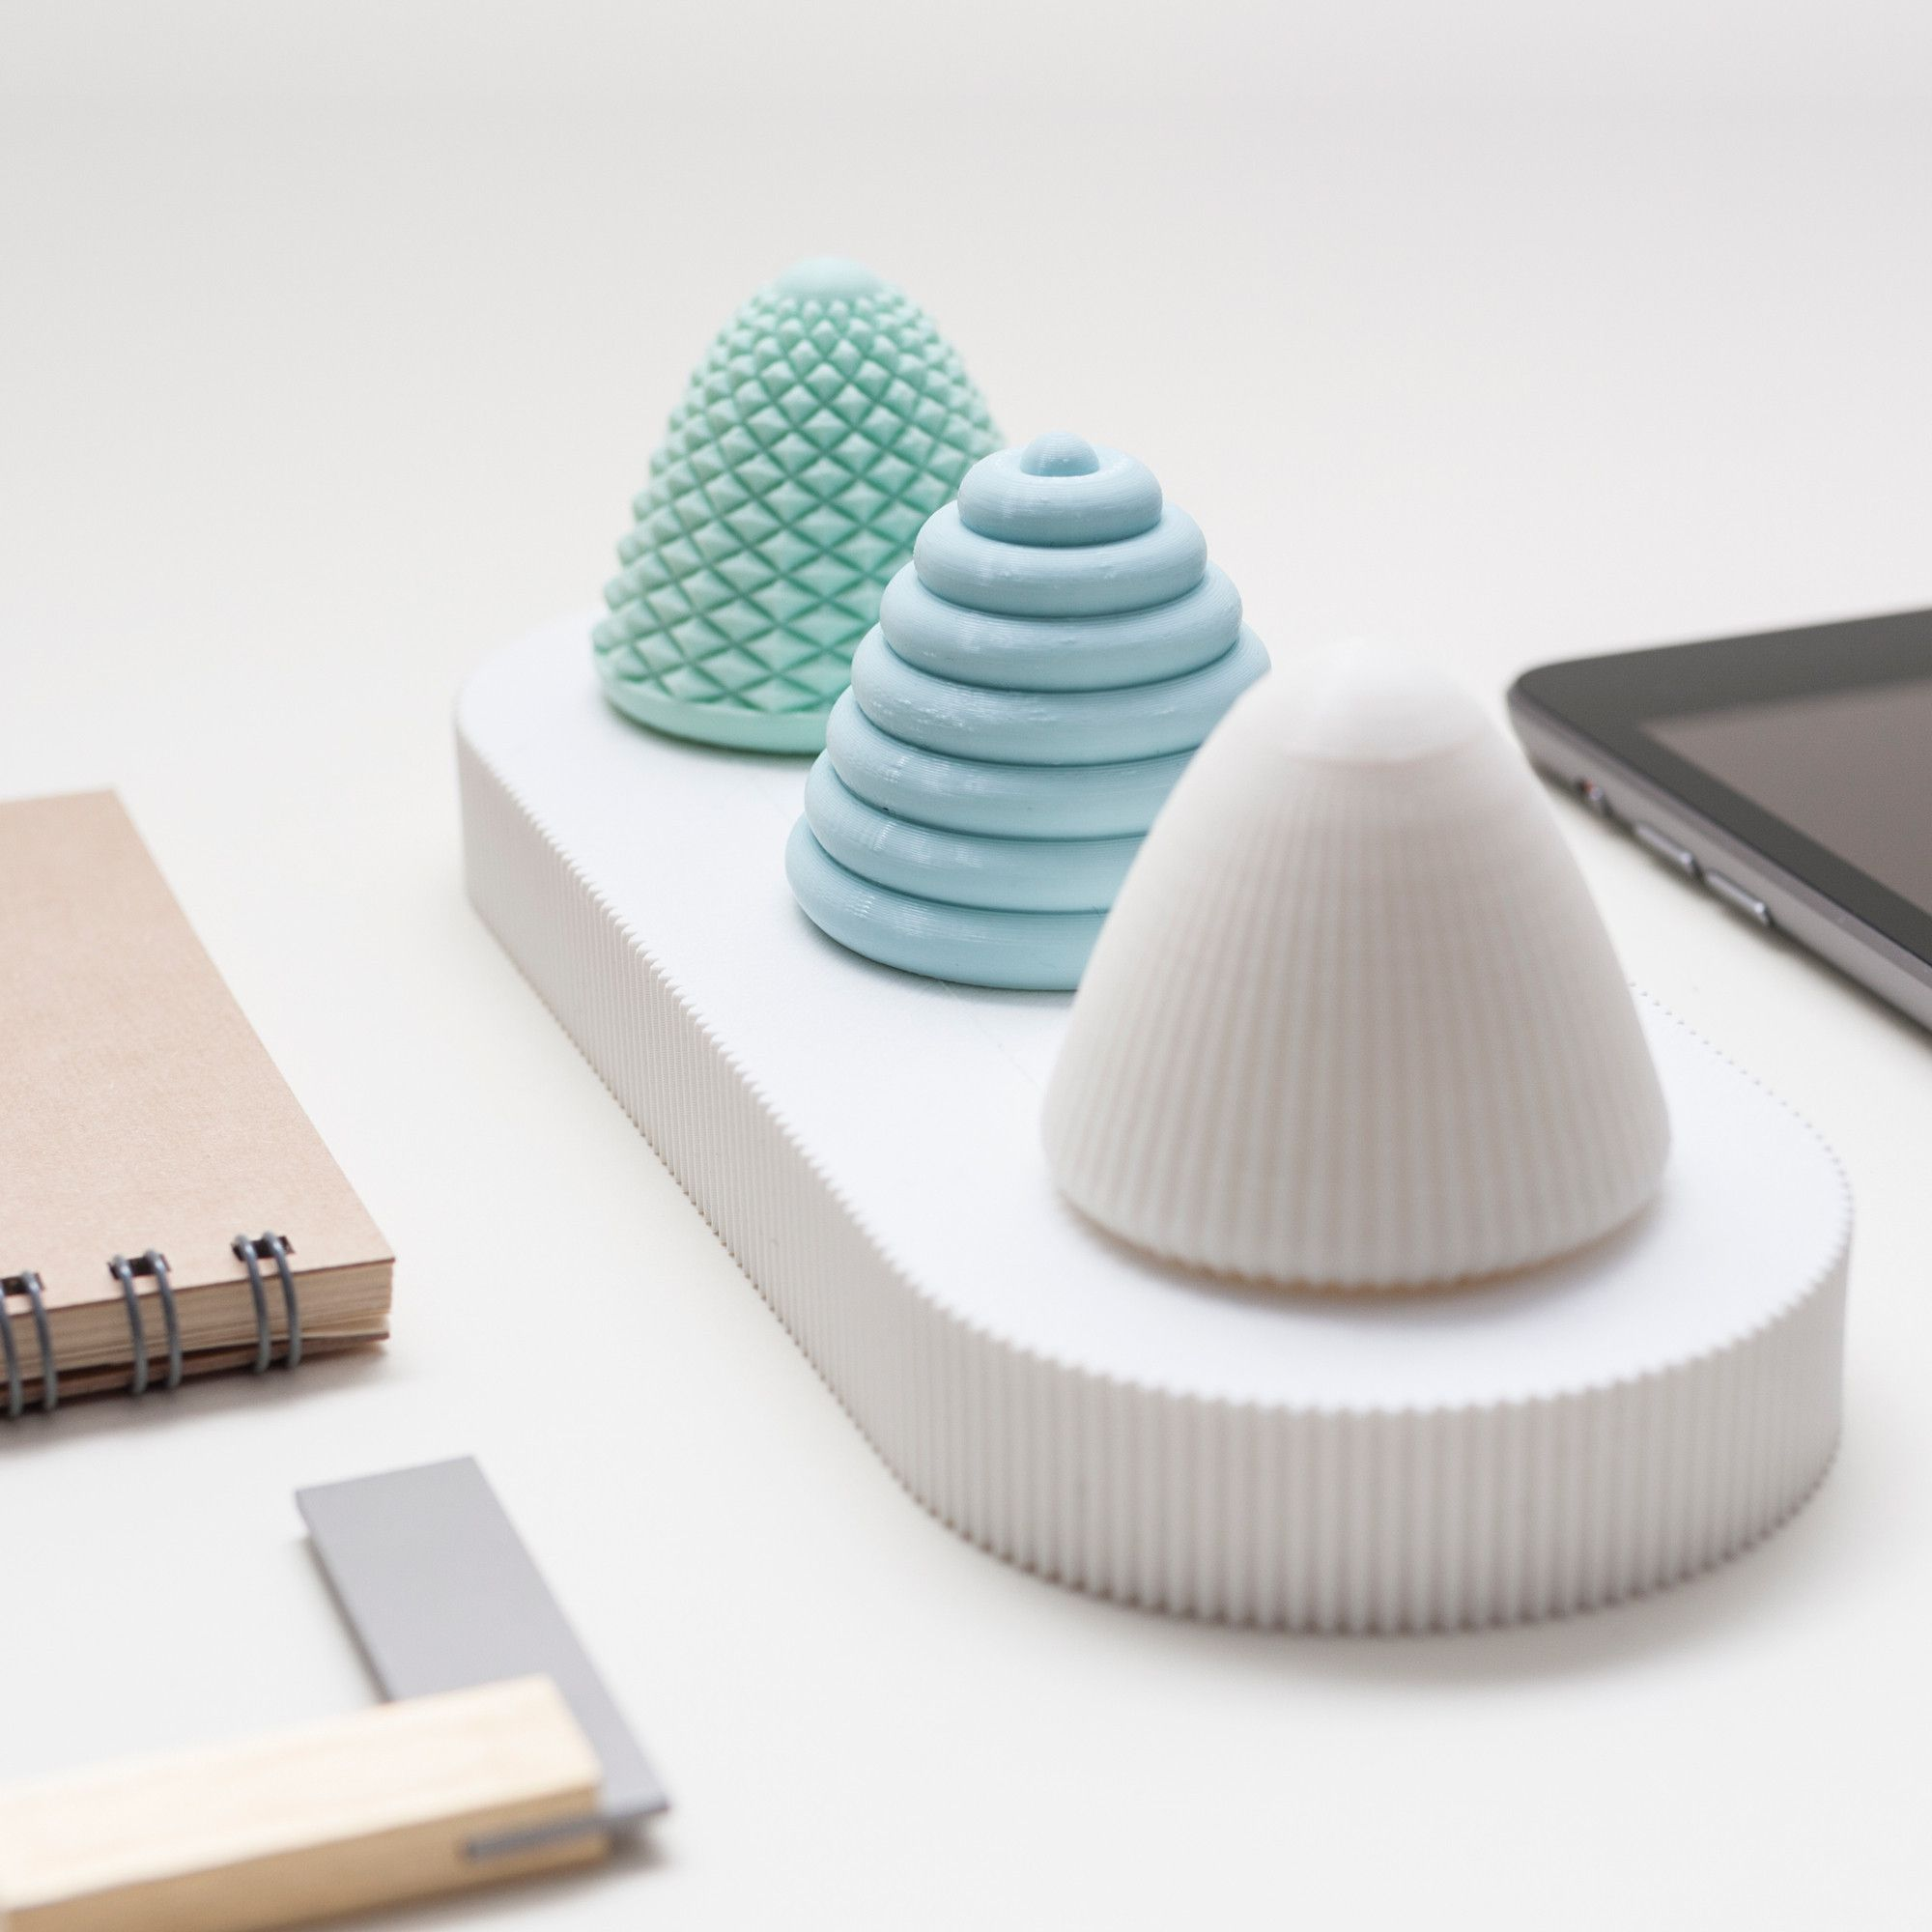 s_r_pastel_2.jpg Download STL file Spin&Relax - Set • 3D printable template, UAUproject